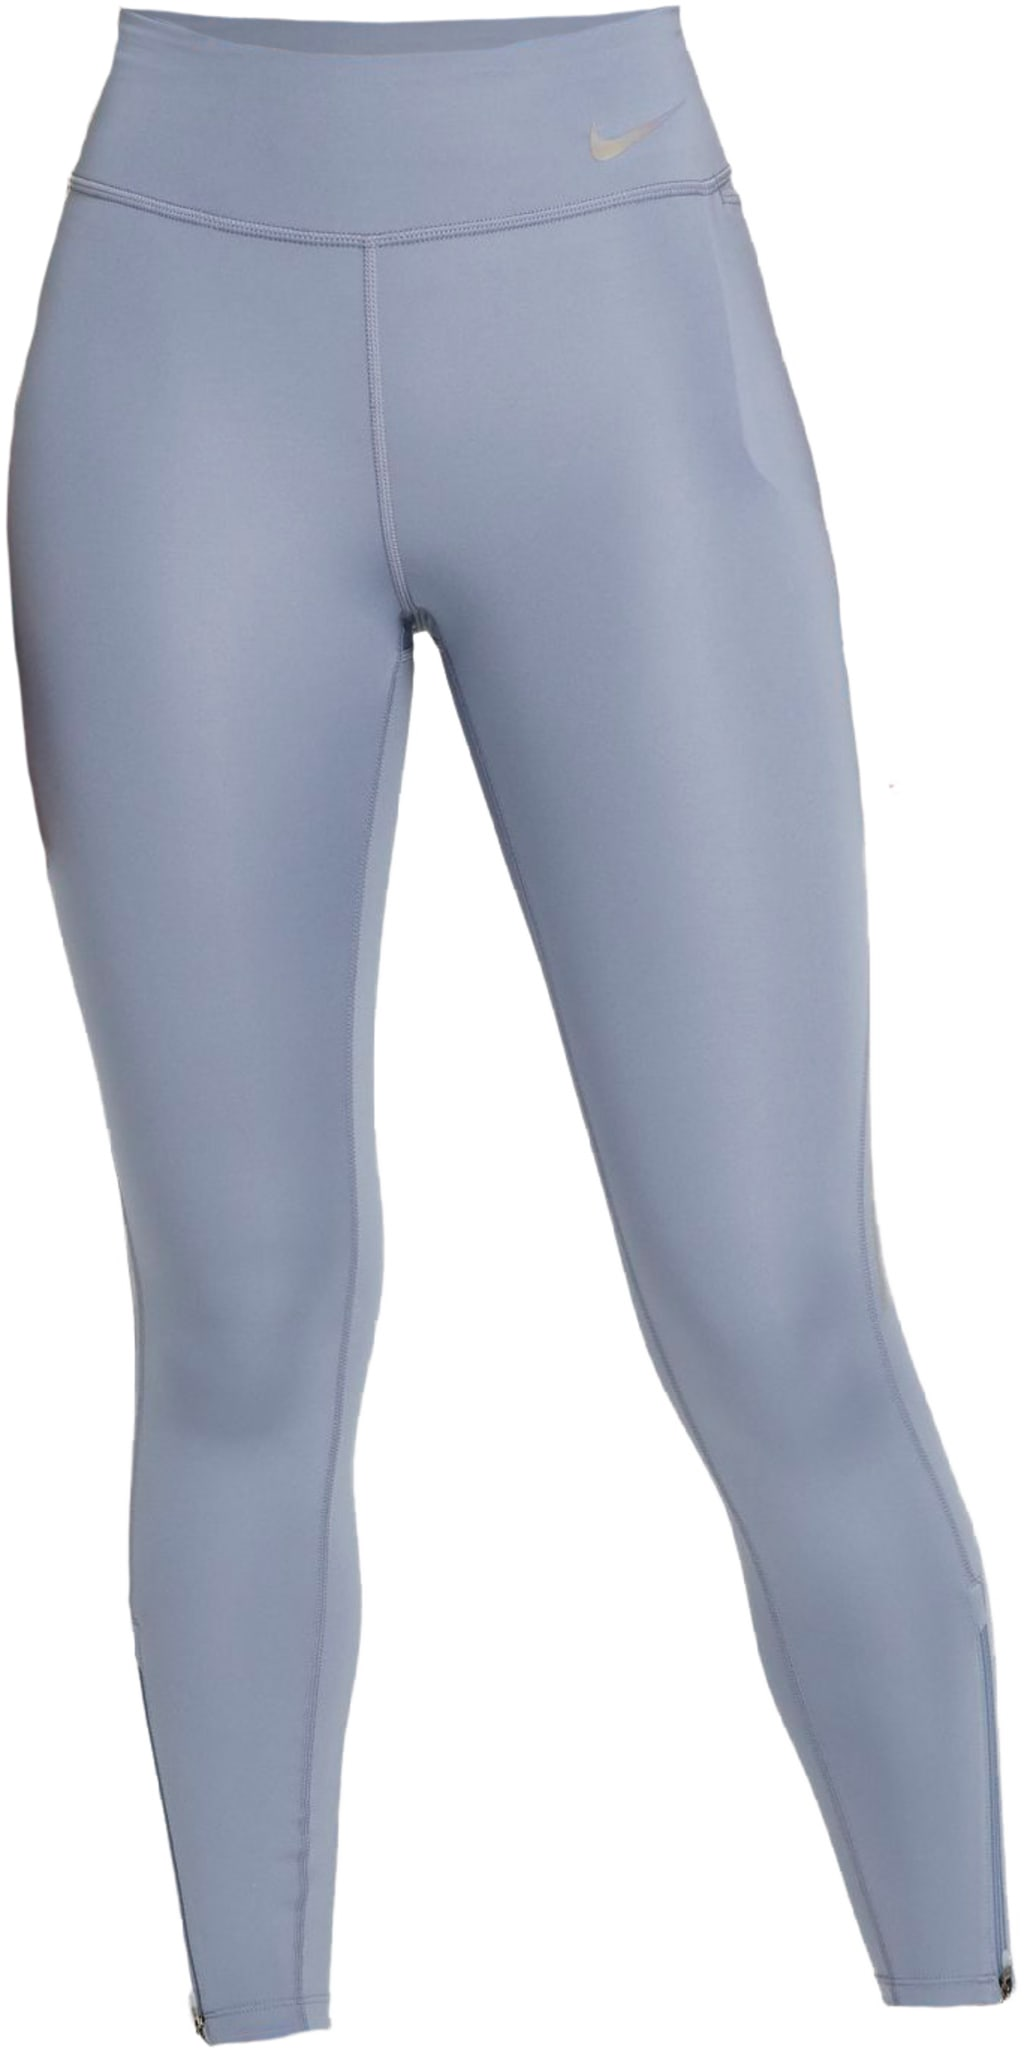 Epic Faster 7/8 Running Tights W